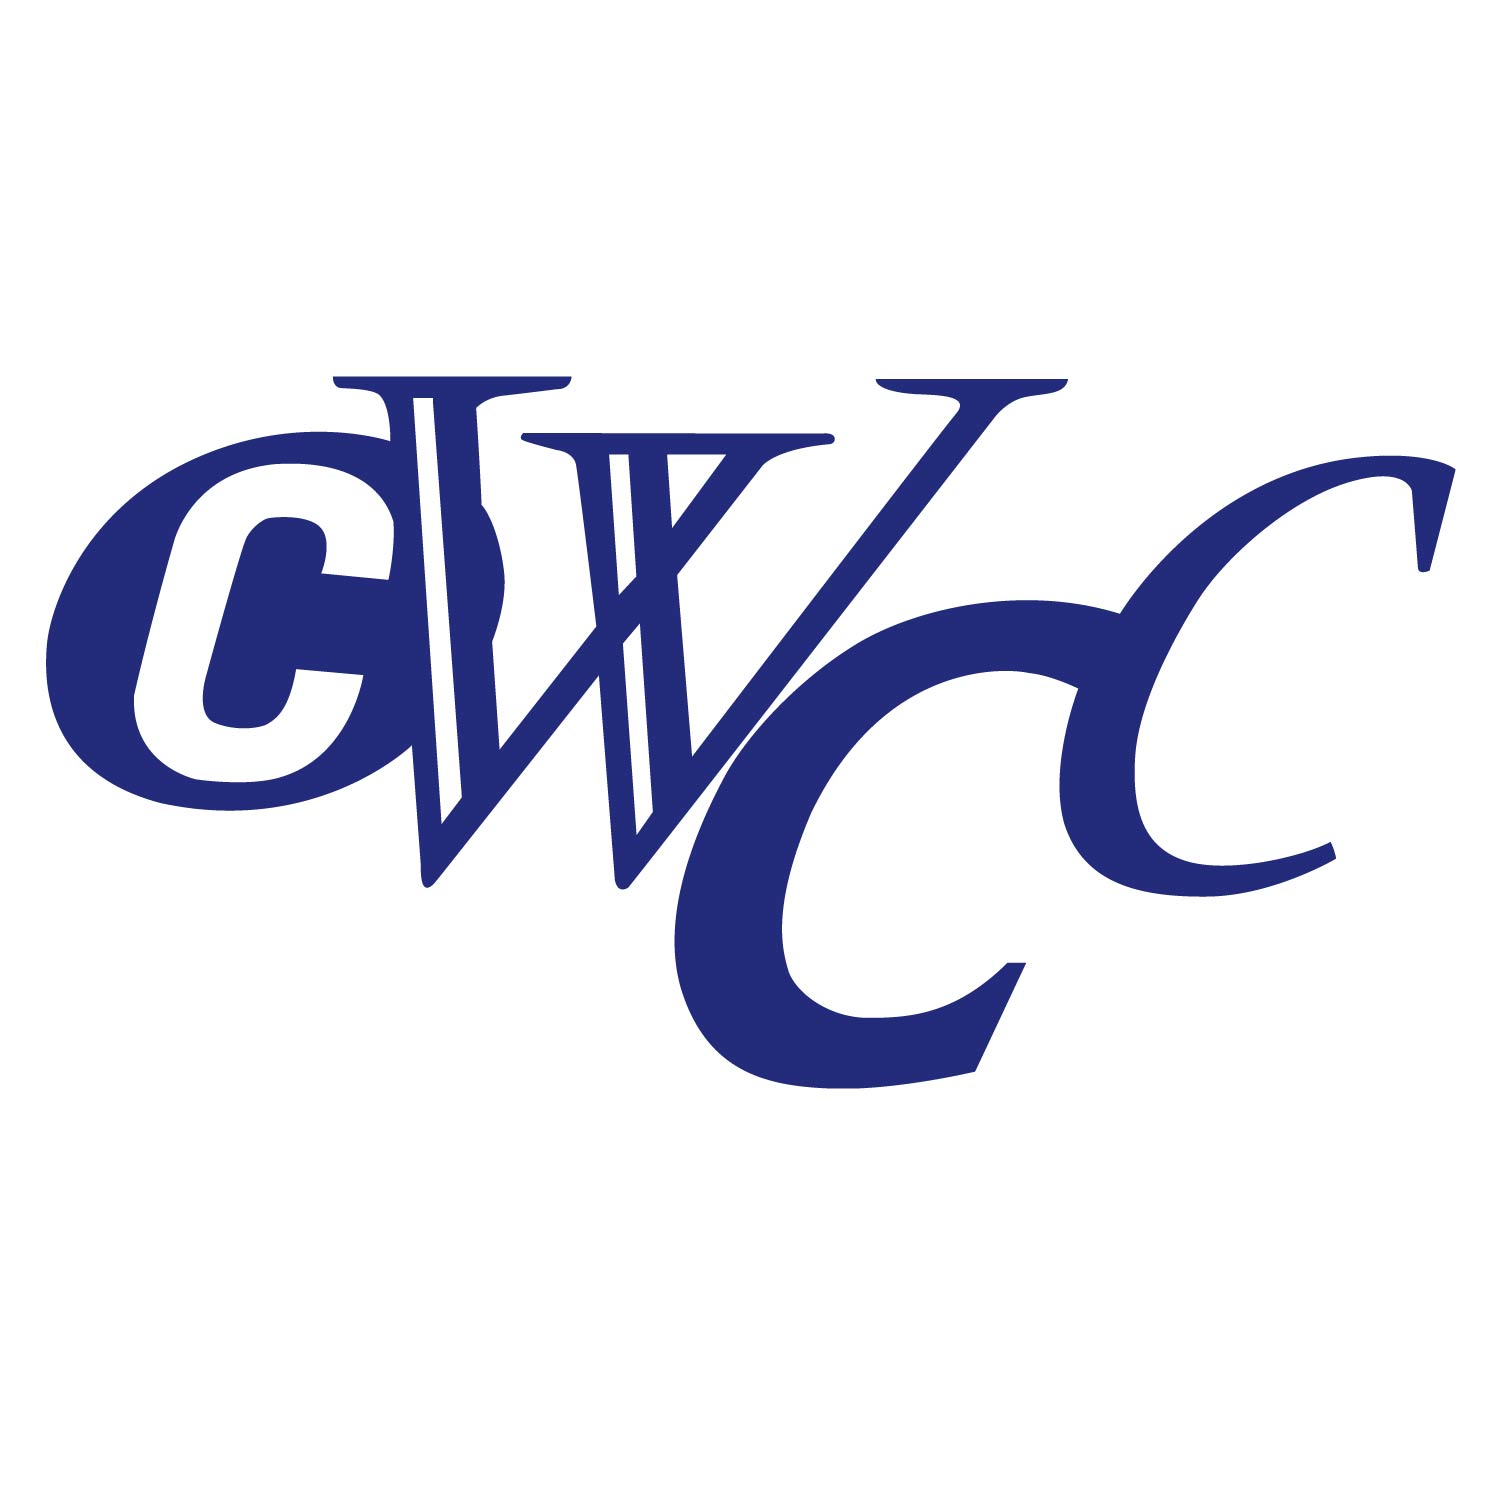 CENTRE WELLINGTON CHAMBER OF COMMERCE (CWCC) COVID-19 UPDATES